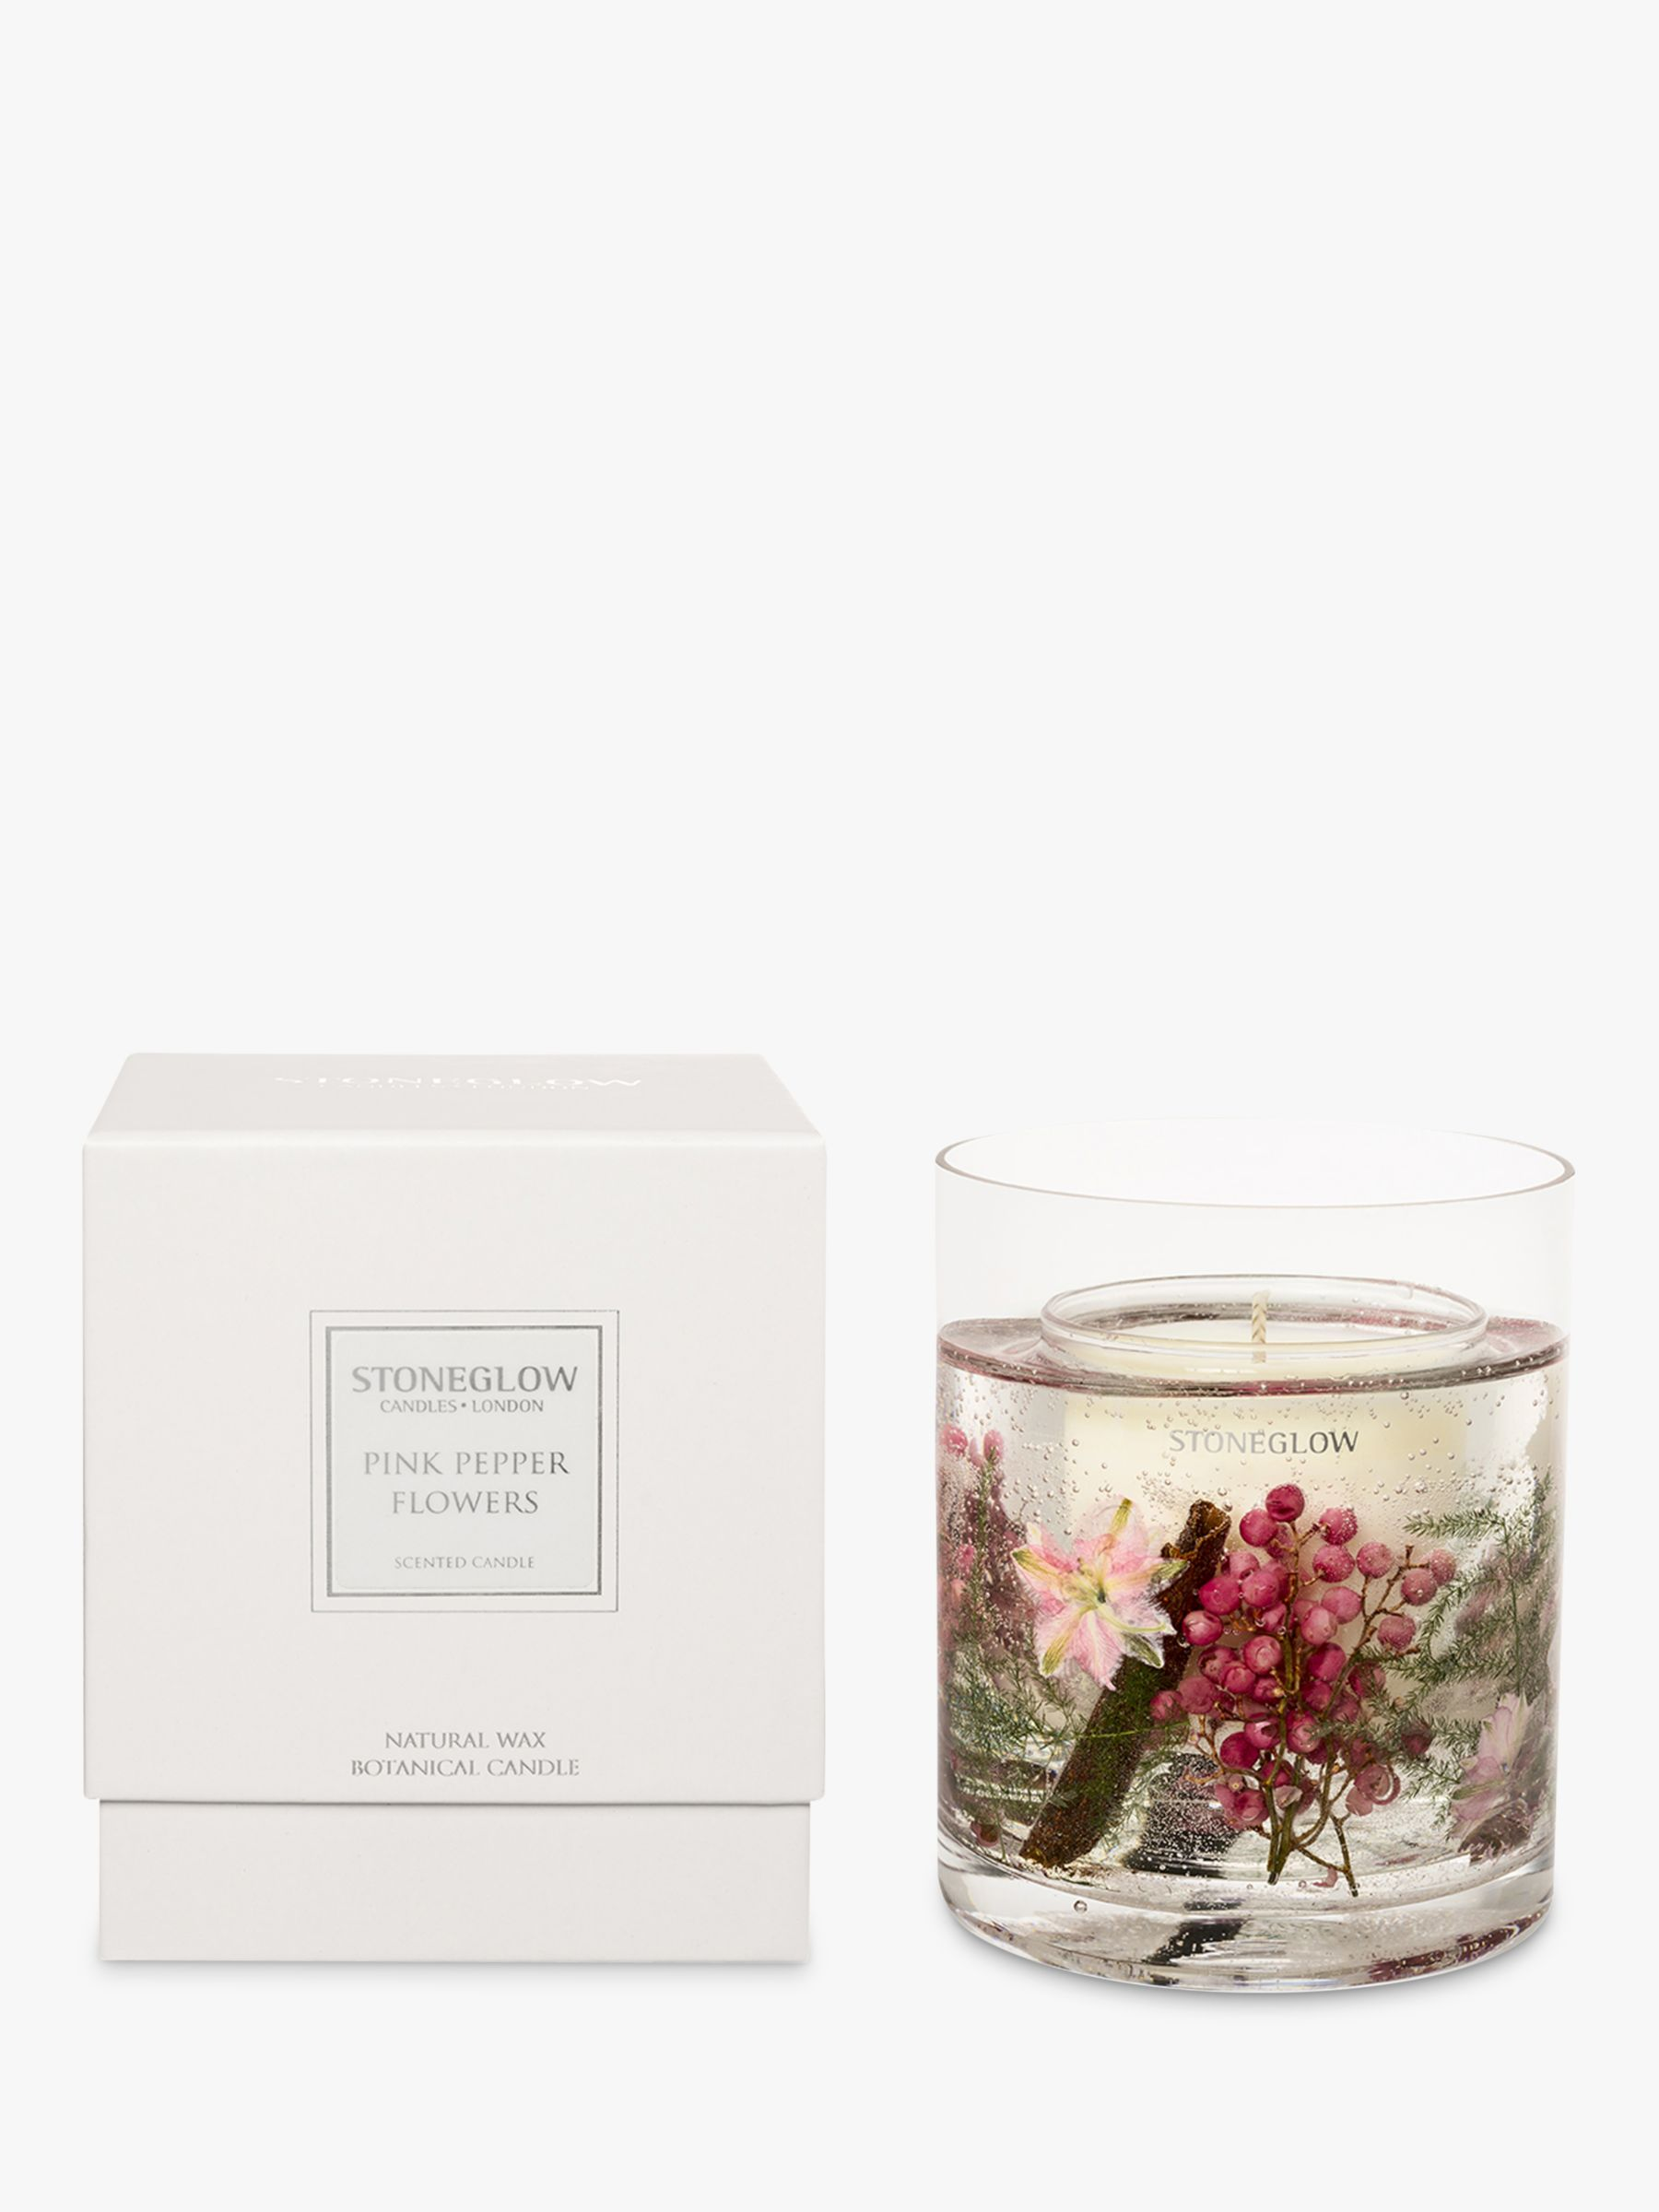 Stoneglow Stoneglow Pink Peppercorn Scented Gel Candle